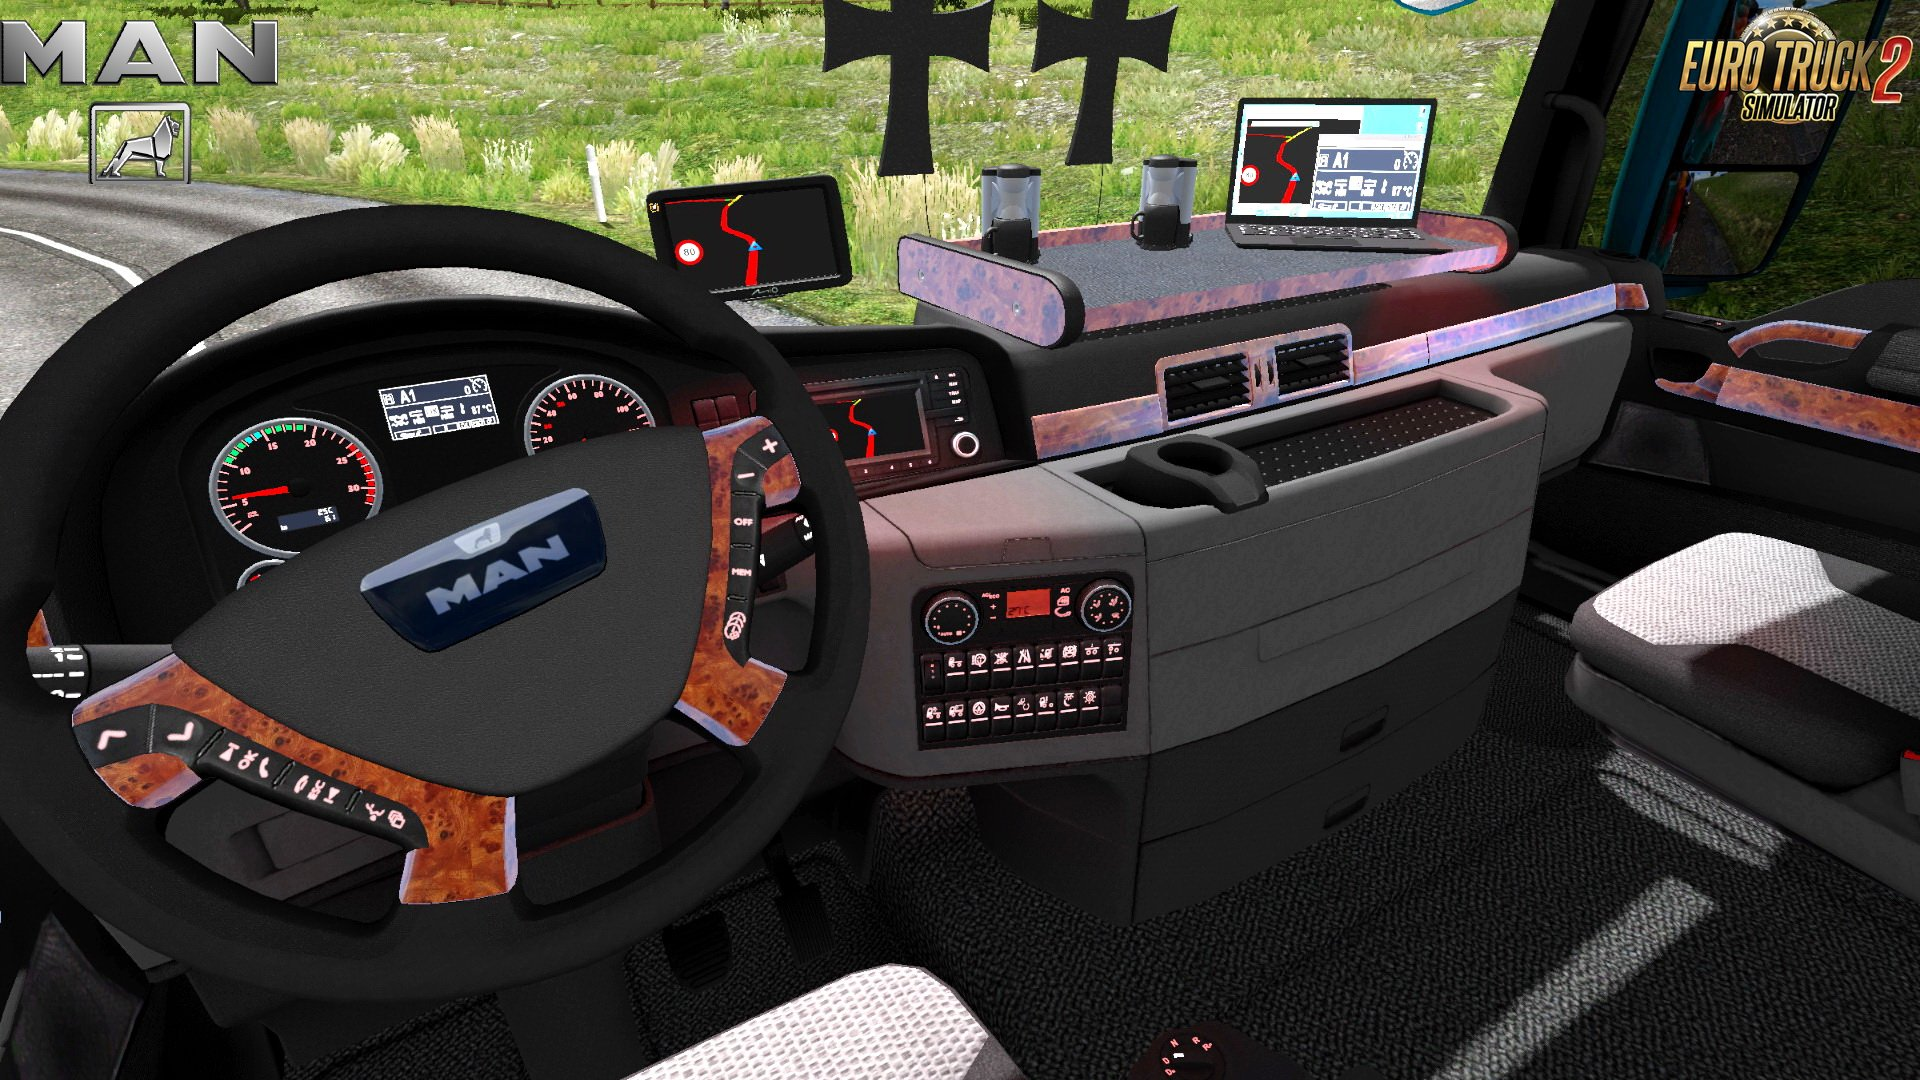 Man Tgx Euro 6 V2 0 By Madster 1 30 X Ets2 Mods Euro